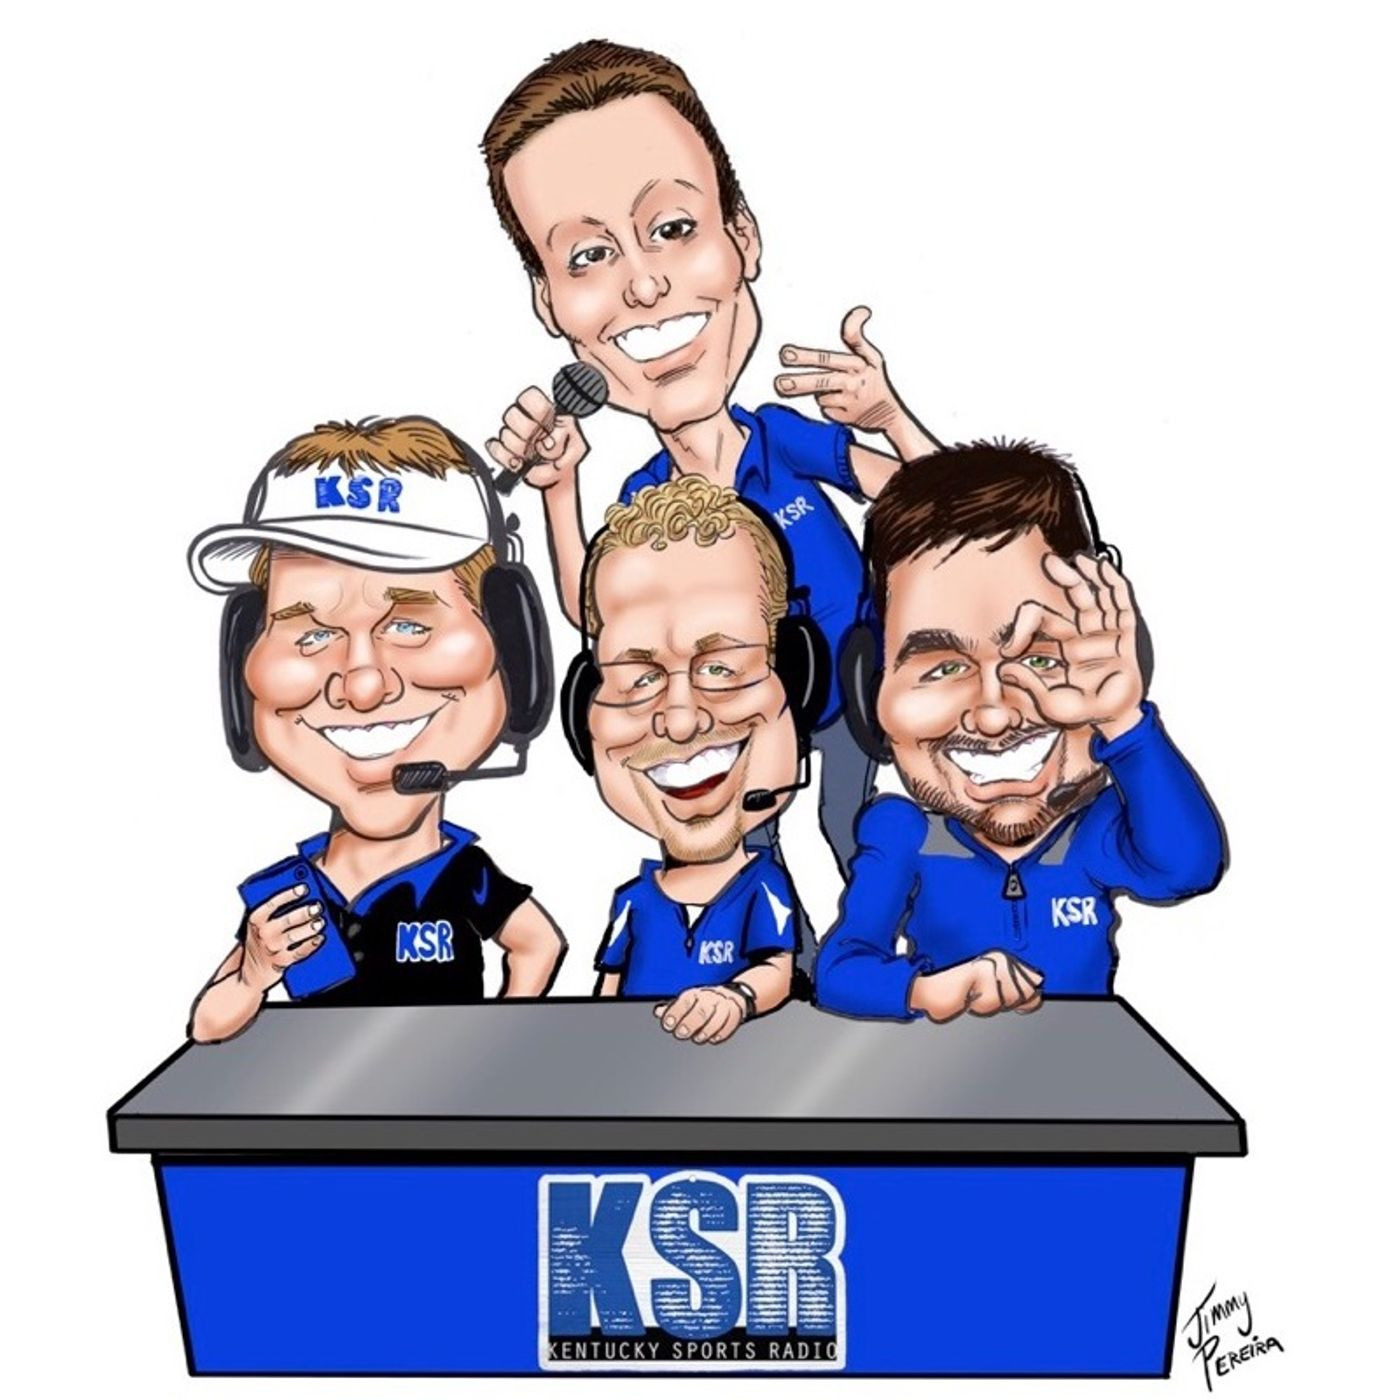 KSR UK-Morehead St. Postgame 2020-11-25